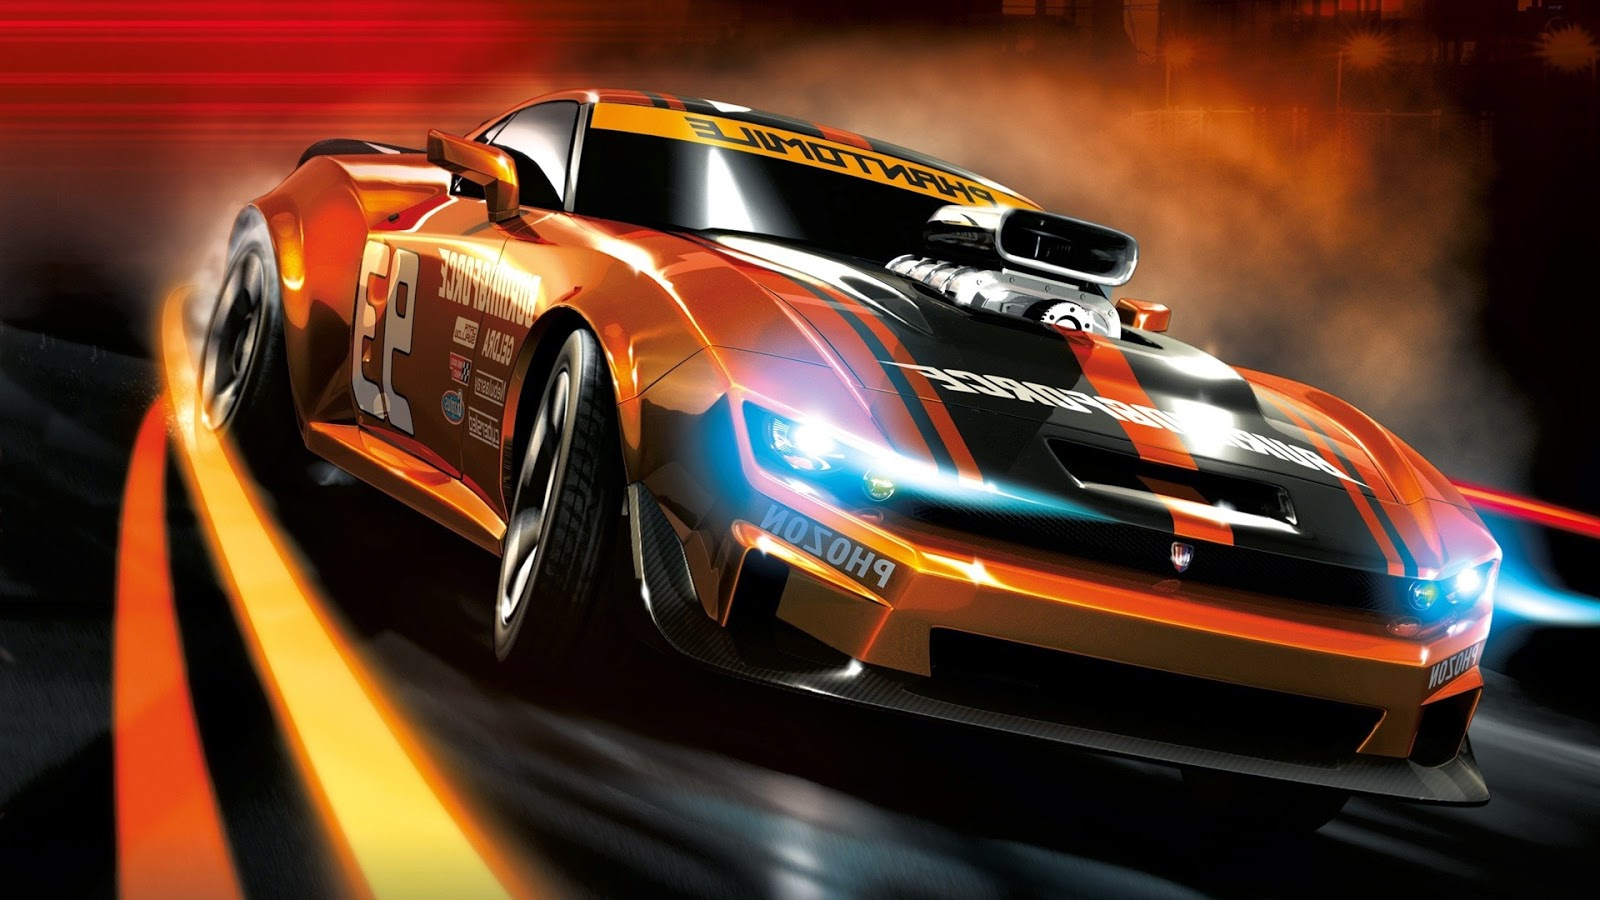 Race Car Wallpaper Wallpapersafari